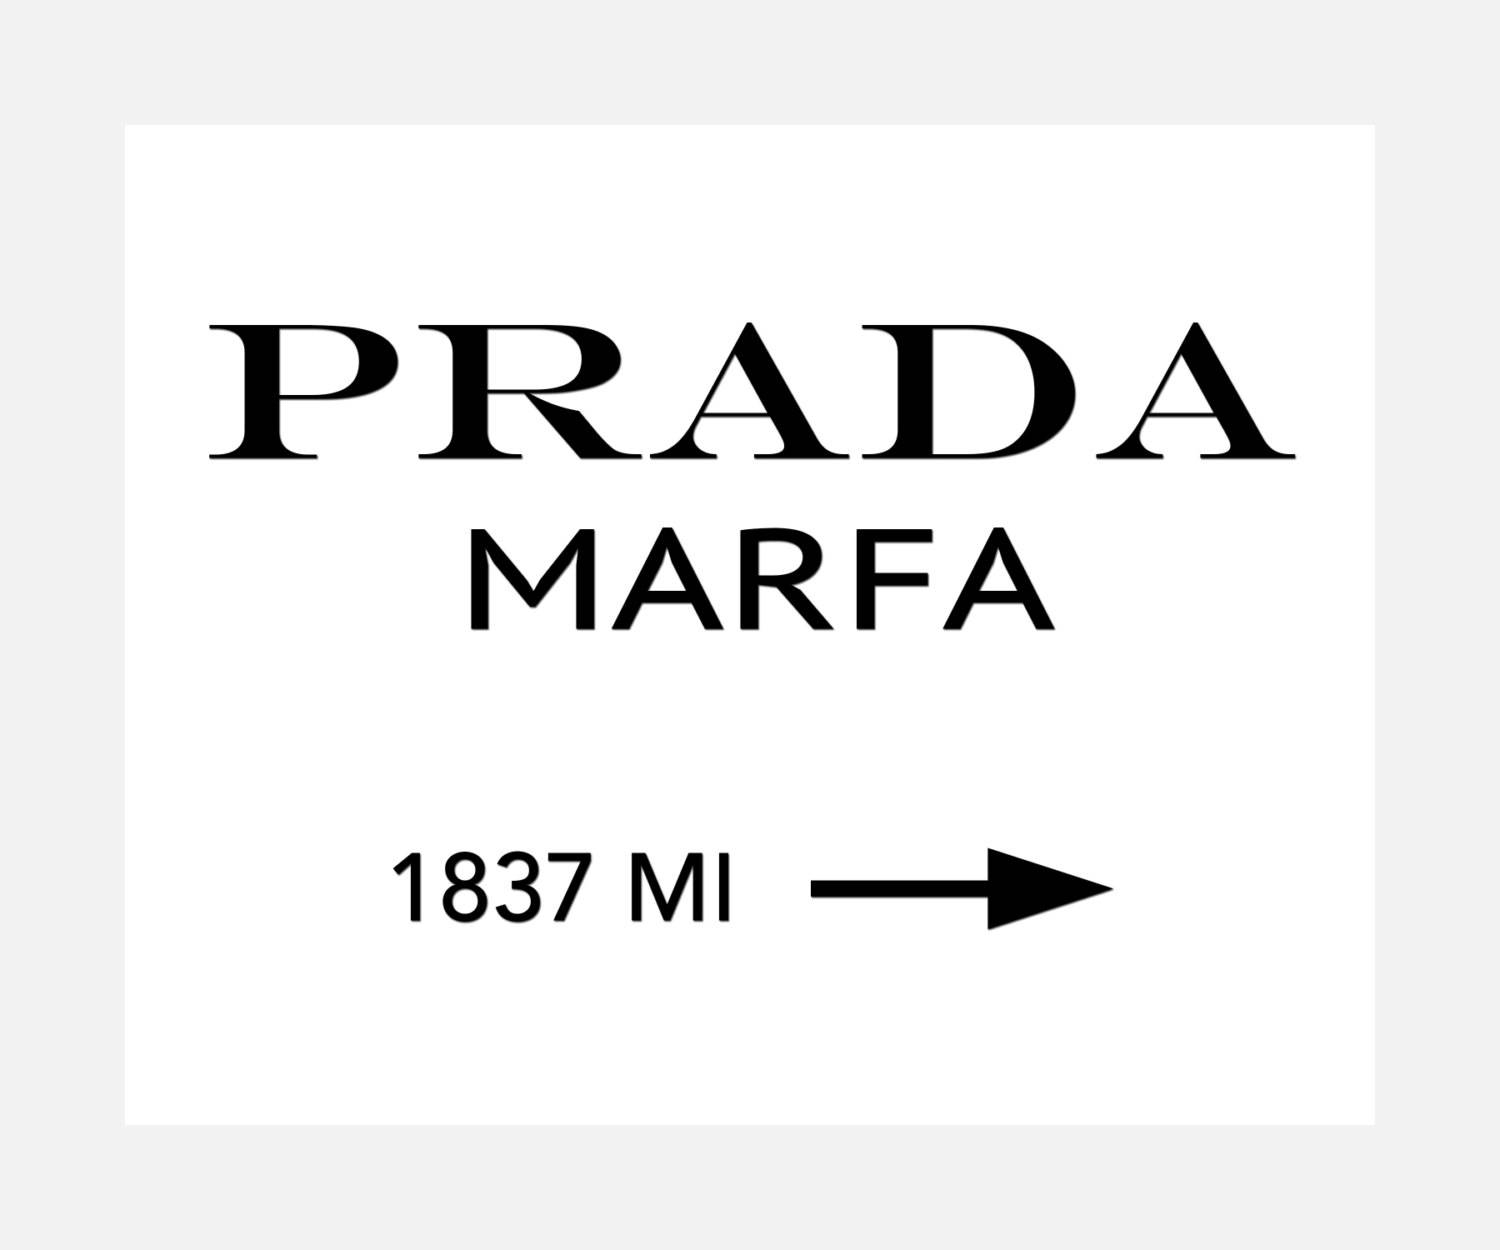 Prada Marfa Ready To Hang Canvas Wrap Or Luster Paper Intended For 2018 Prada Marfa Wall Art (Gallery 3 of 25)